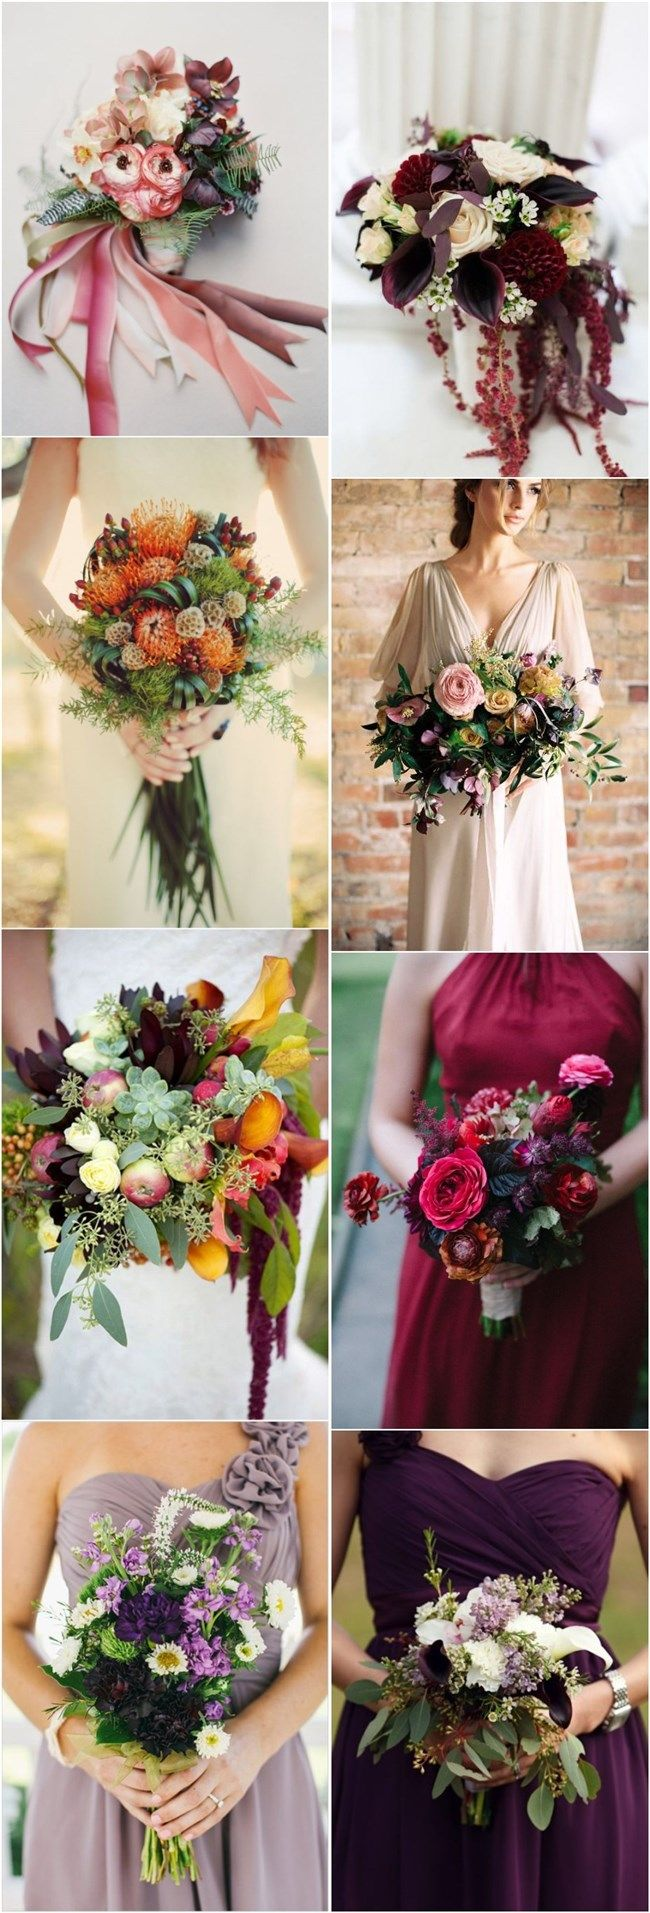 Wedding flower bouquet ideas for Fall / Autumn brides, featuring red, orange, yellow and purple.